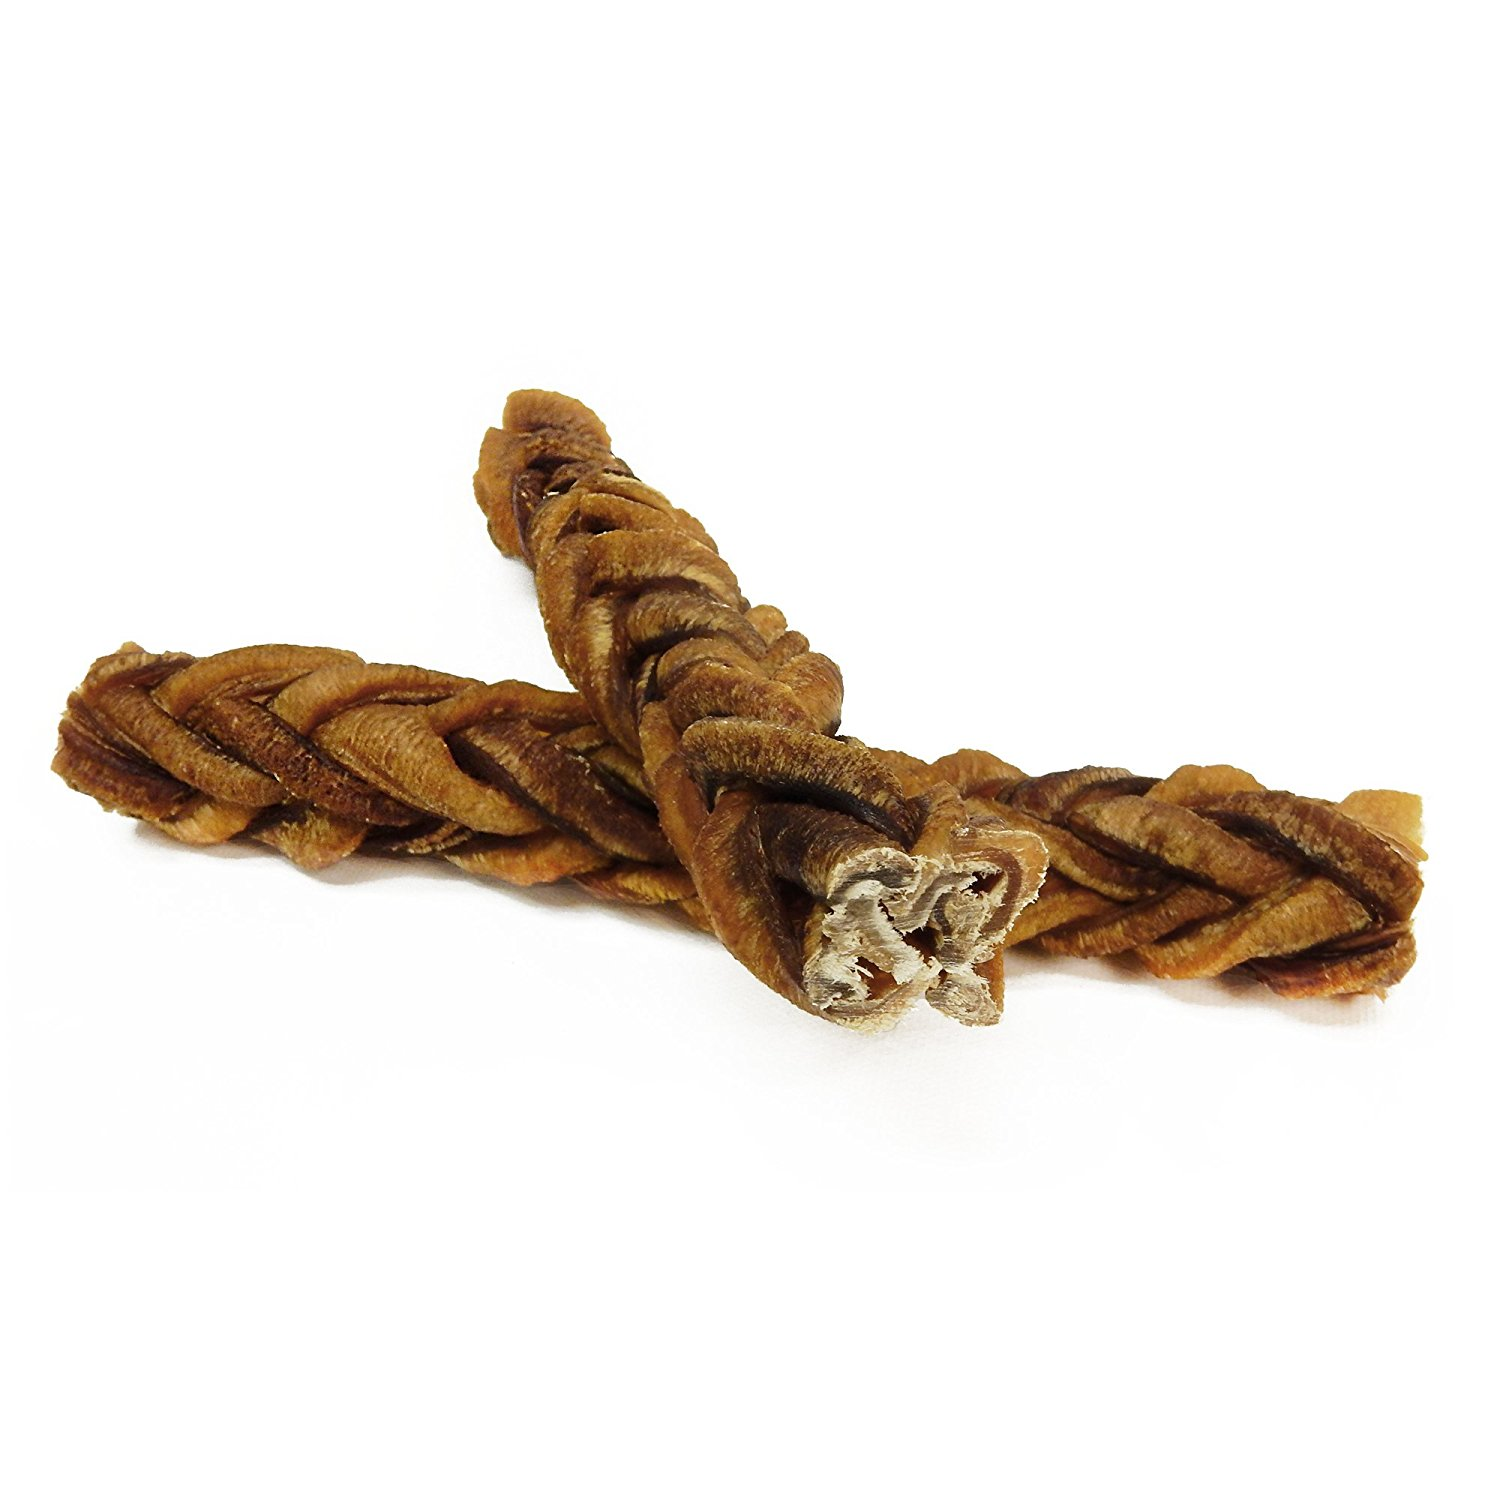 Monster bull sticks for dogs - dog treats - best dog bone - dog bone - bully stick - braided bully stick